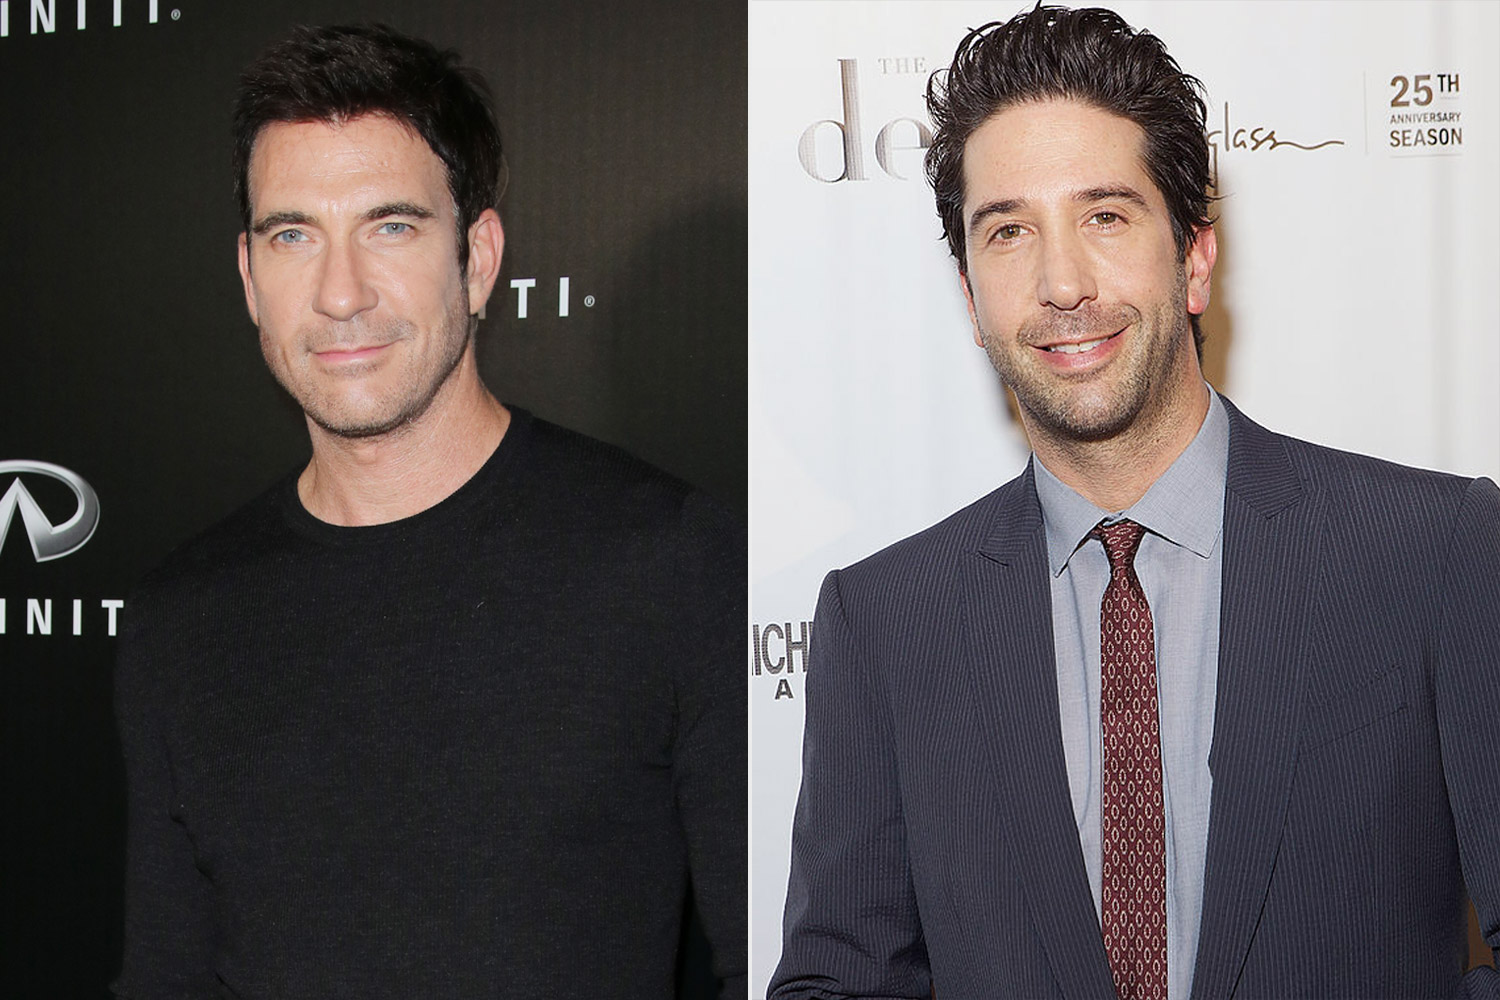 Dylan McDermott on the left, David Schwimmer on the right